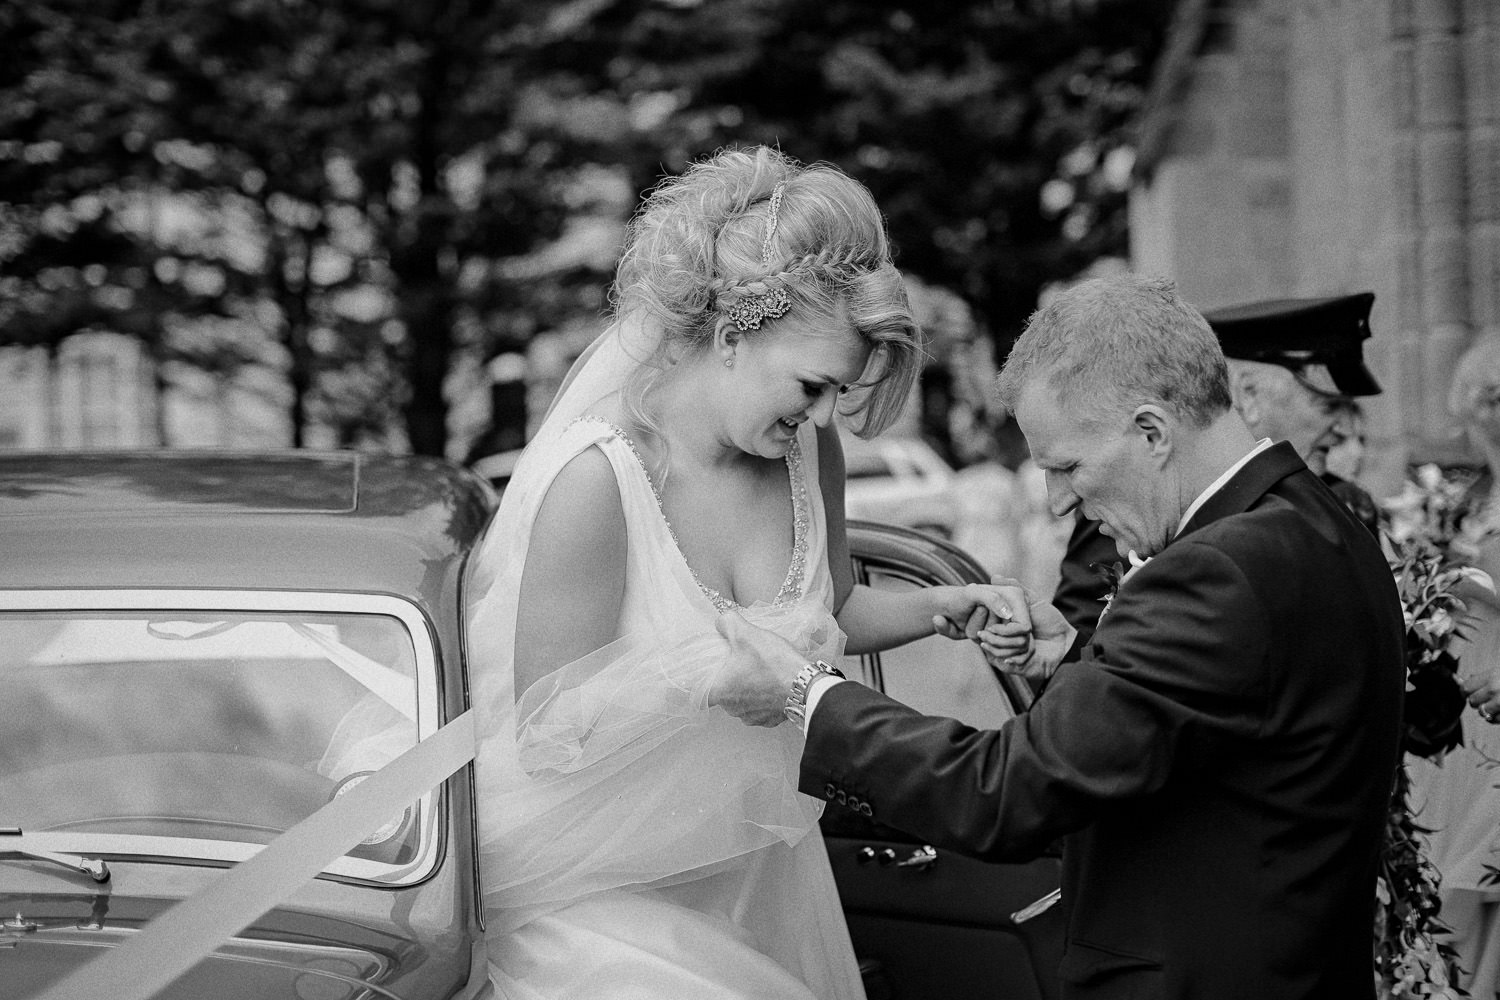 Dad helping daughter out of Roll Royce wedding car